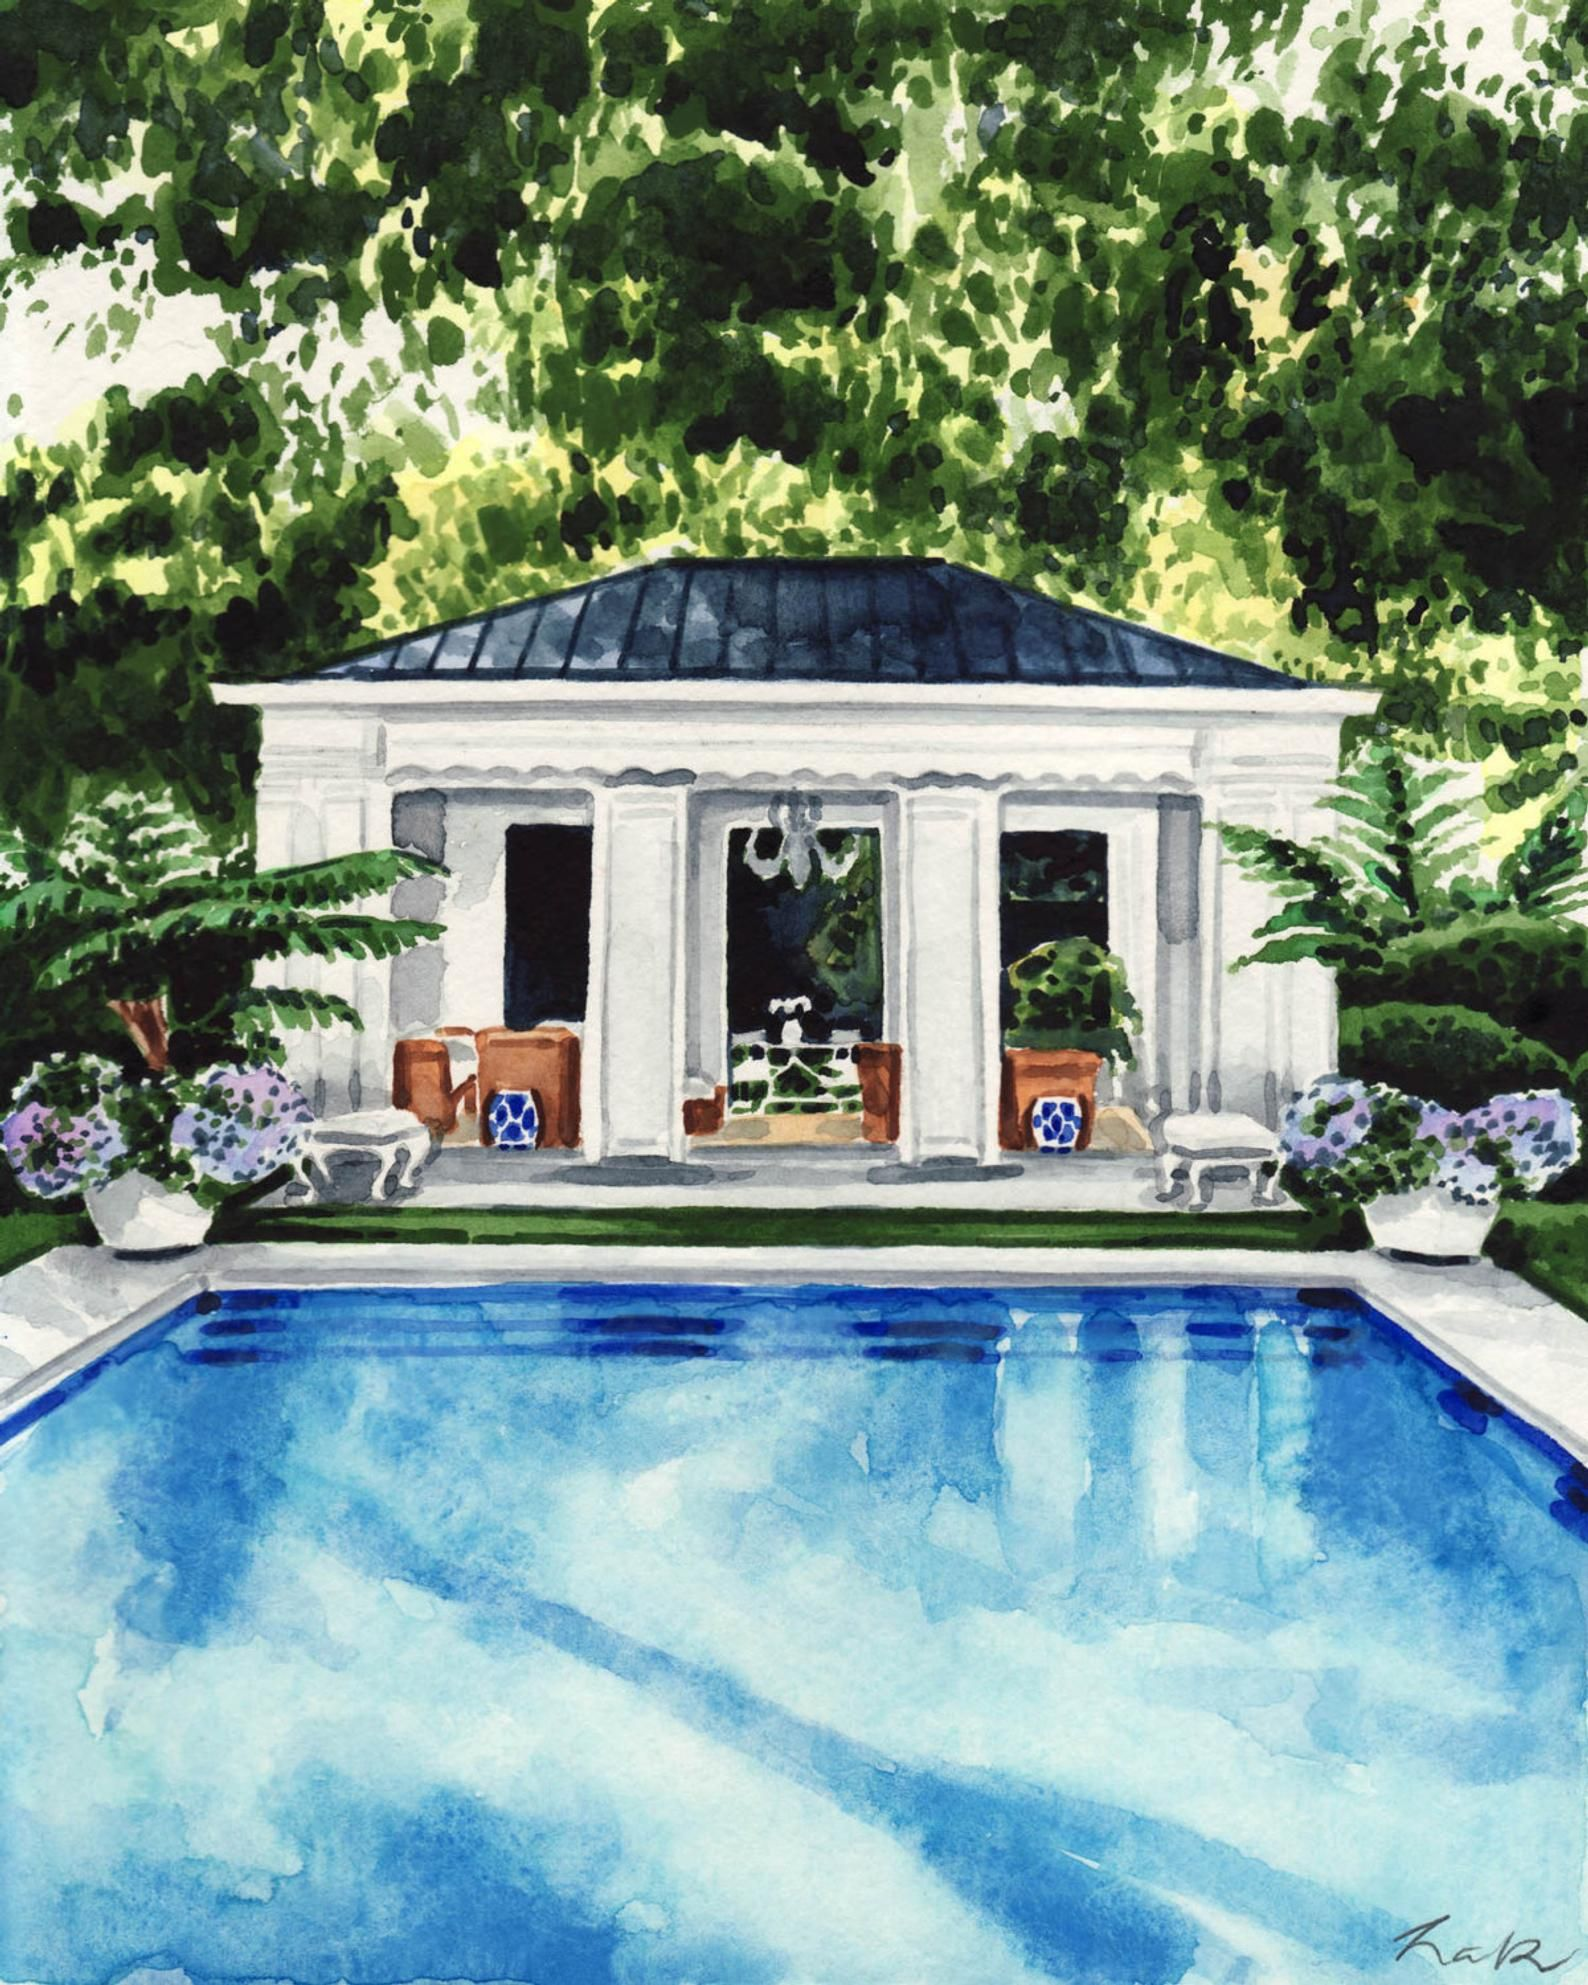 Pool House Art New England Painting Palm Trees Print Water Art Etsy Pool Houses Pool House Swimming Pools Backyard